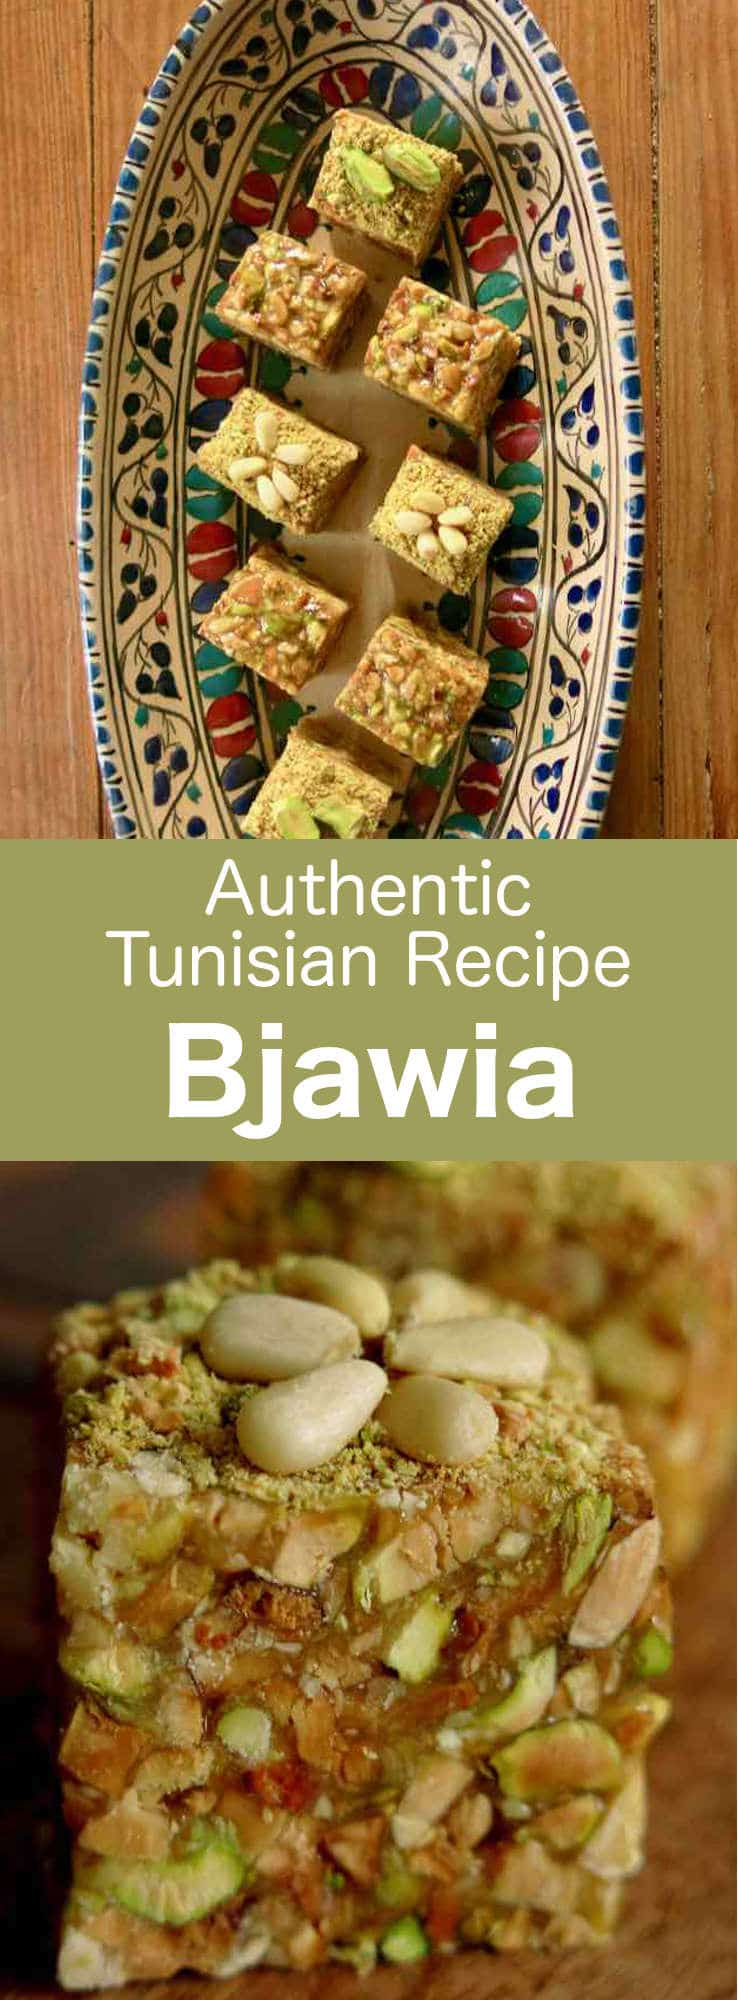 Bjawia is a Tunisian dessert that is prepared with roasted dried fruits which deliver all their aromas in a soft syrup to form a divine bite-size pastry filled with pistachios. #Tunisia #Tunisian #TunisianCuisine #TunisianRecipe #NorthAfricanCuisine #NorthAfricanRecipe #NorthAfrica #Maghreb #MaghrebCuisine #Pastry #Dessert #WorldCuisine #196flavors